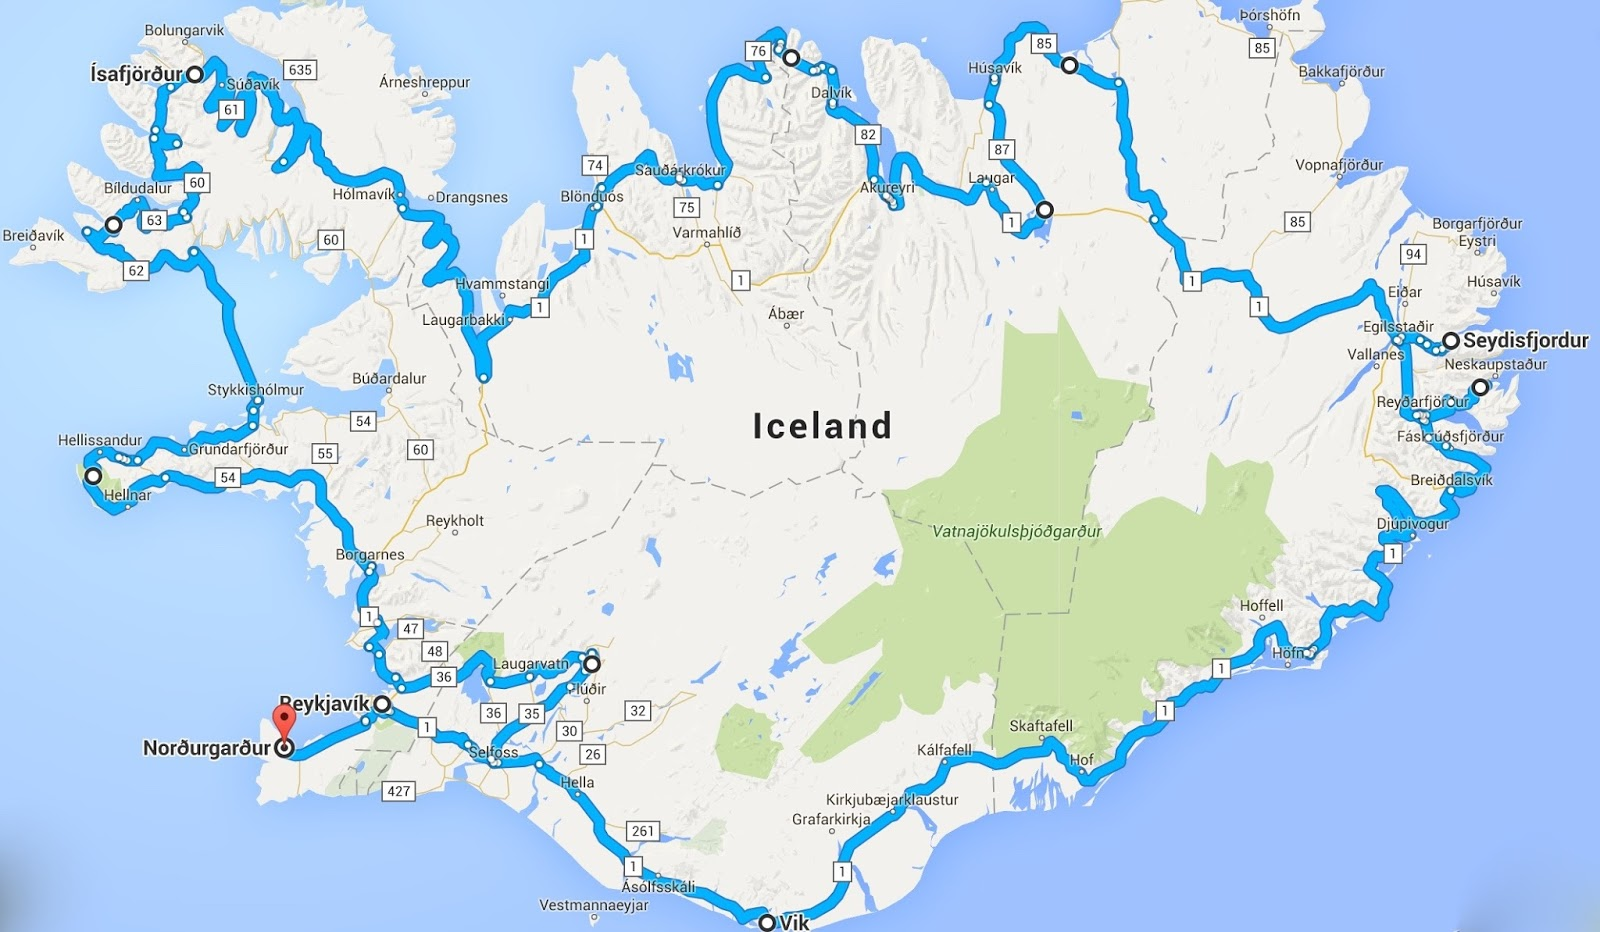 iceland itinerary | lee-reid family travels & photo blog